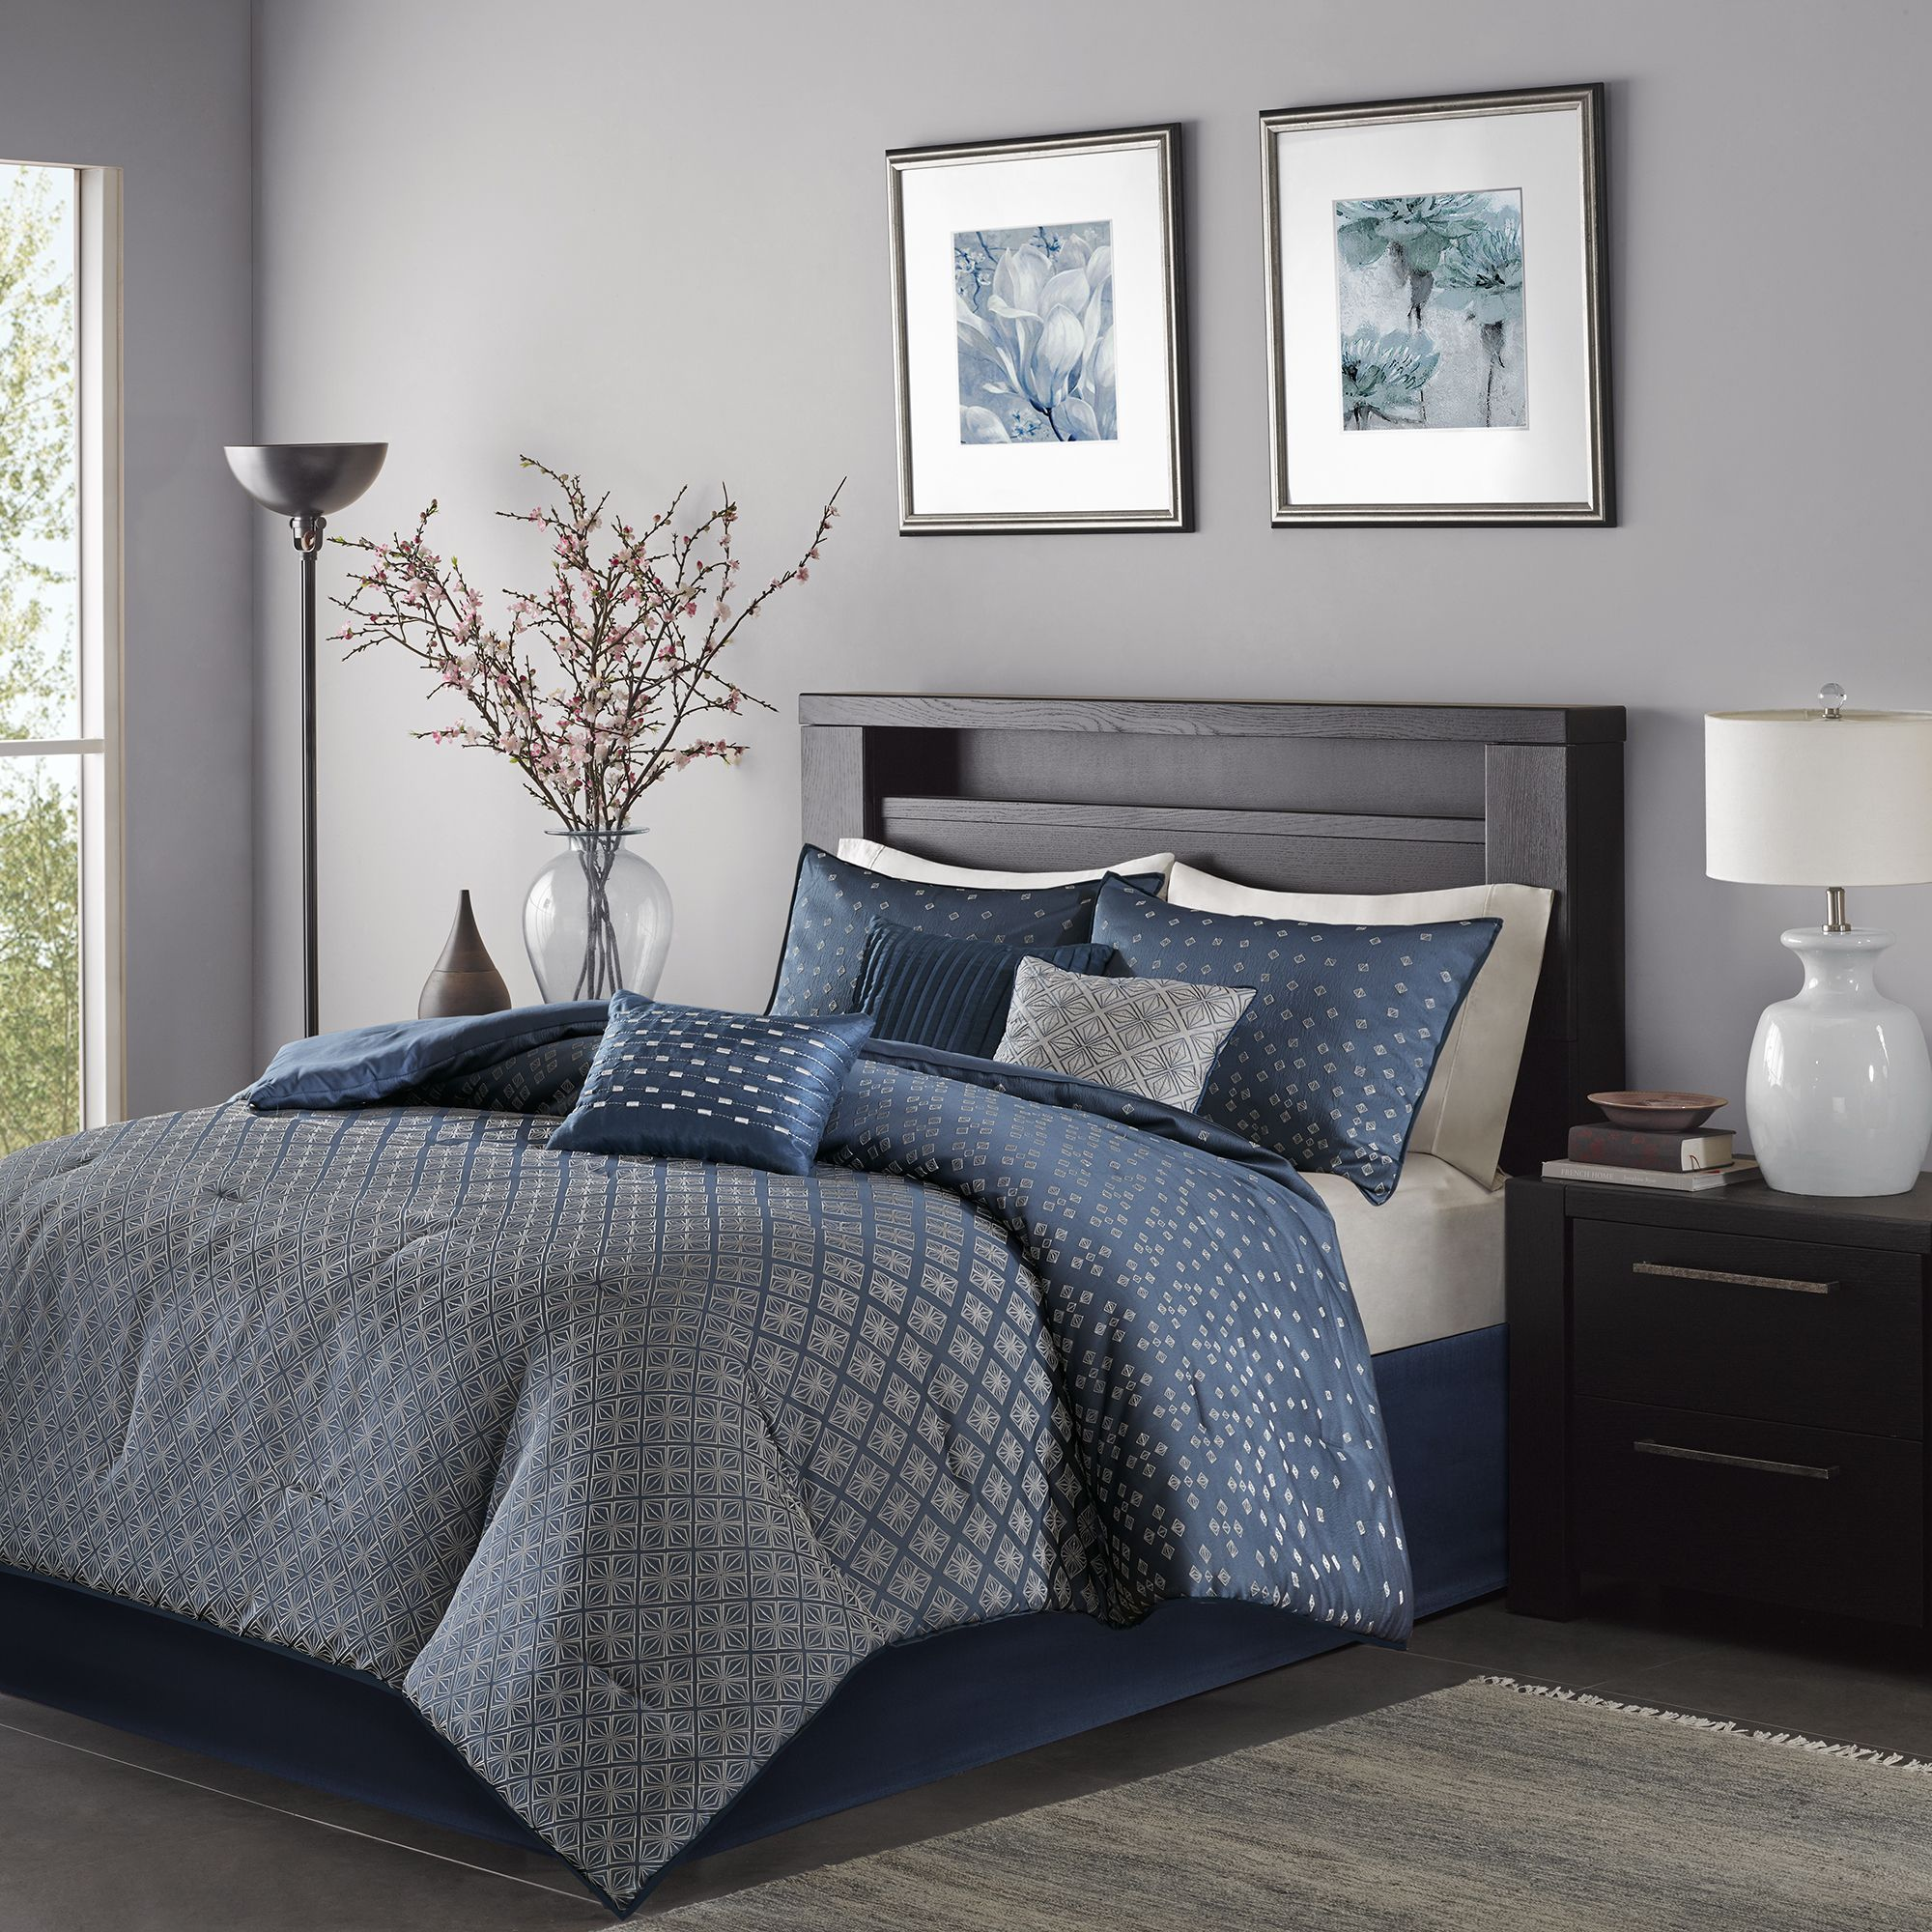 set sets a osopalas size sale comforter full in king on cream bedroom bag com comforters clearance top queen bed cheap